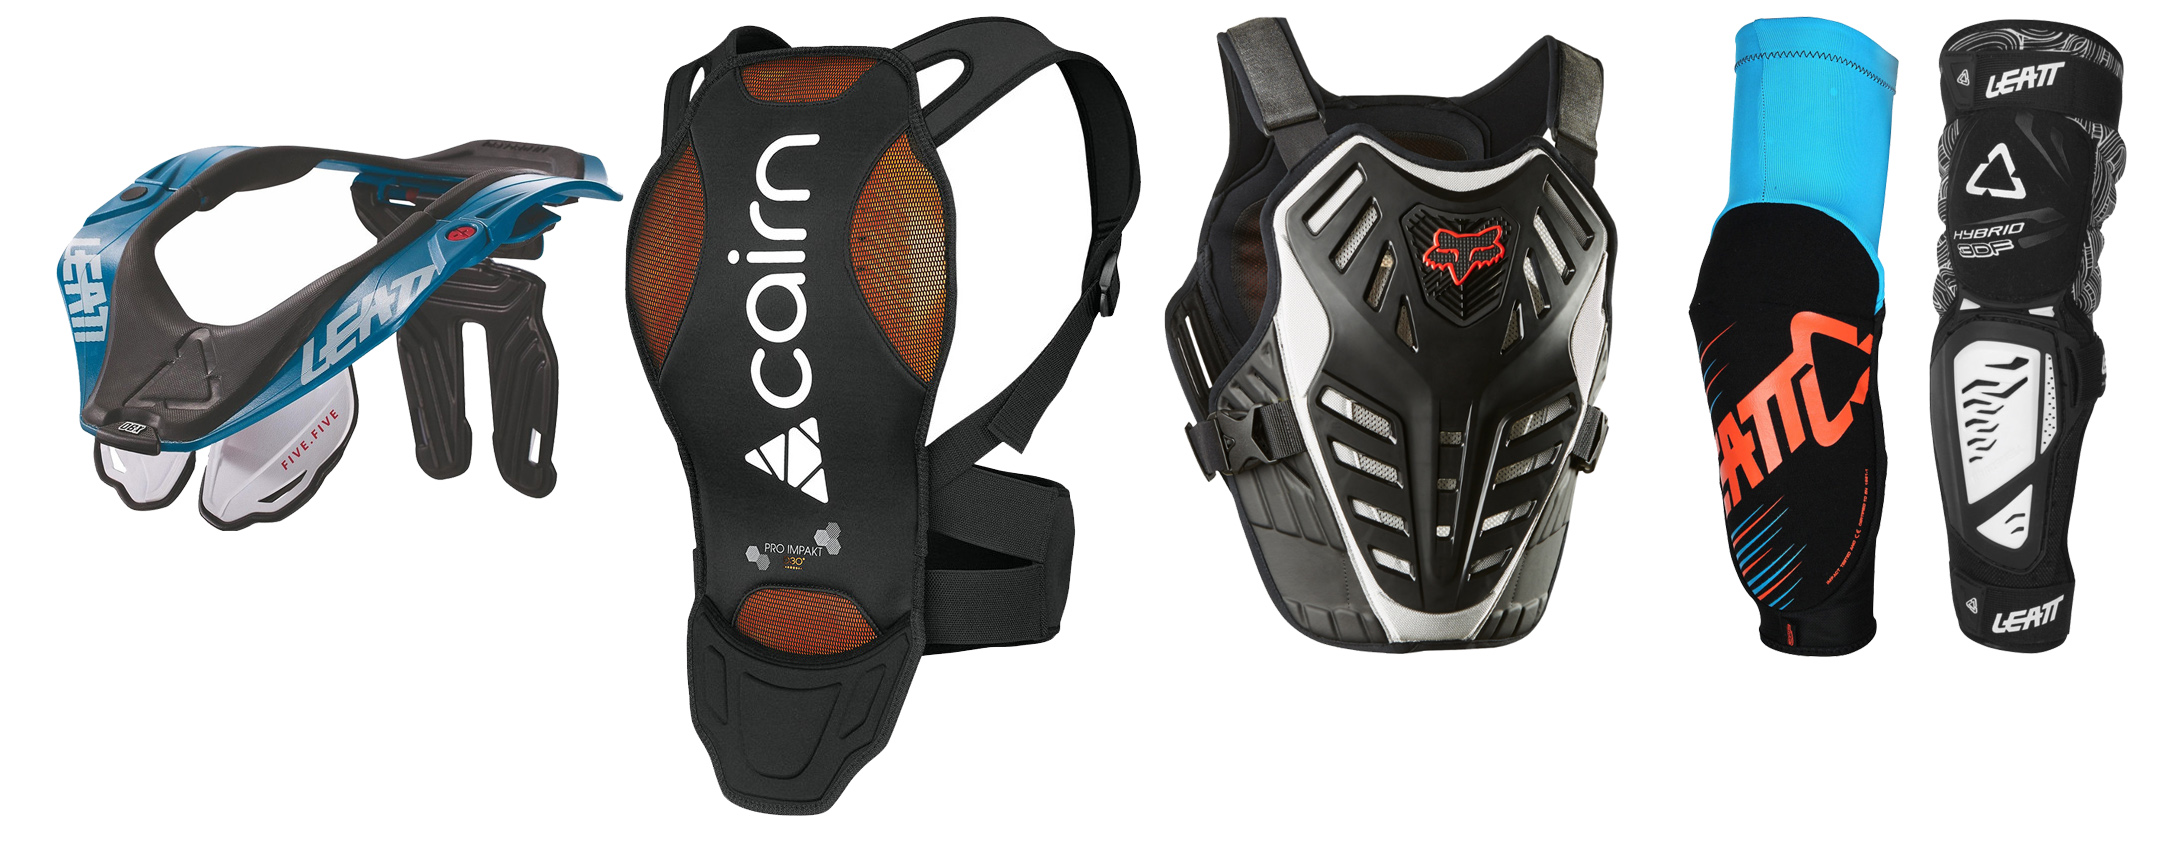 MTB protections